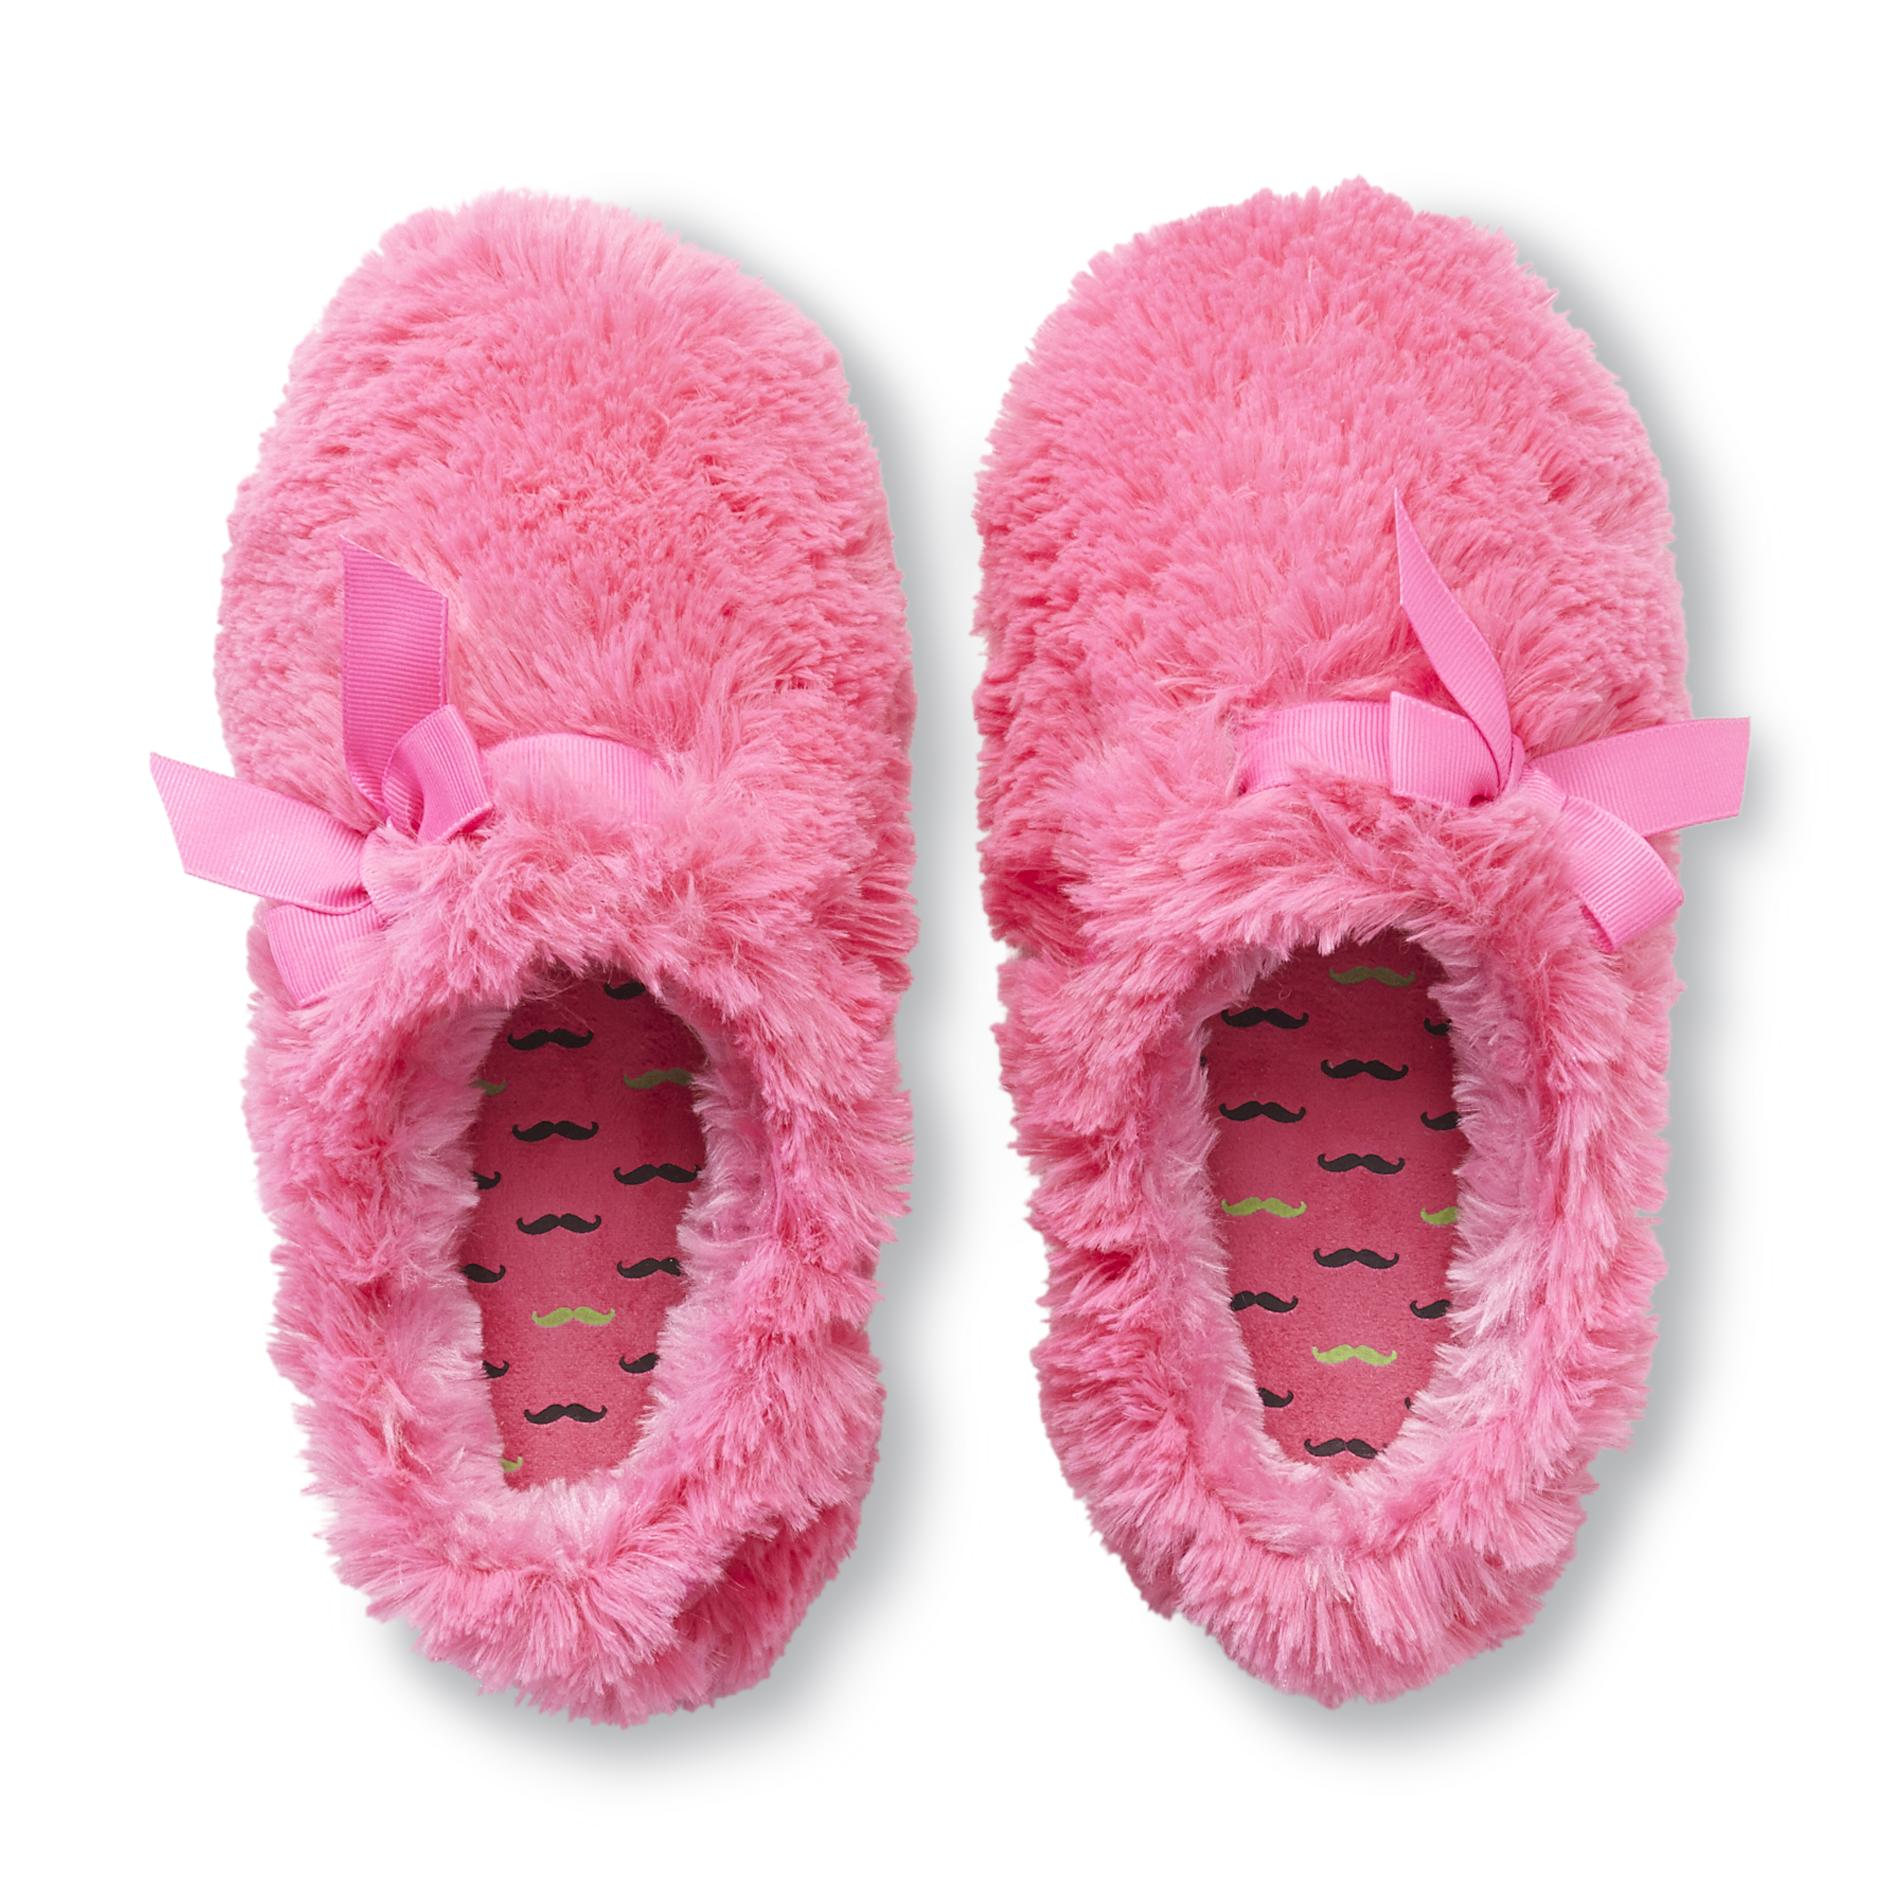 Women's Fuzzy Slippers